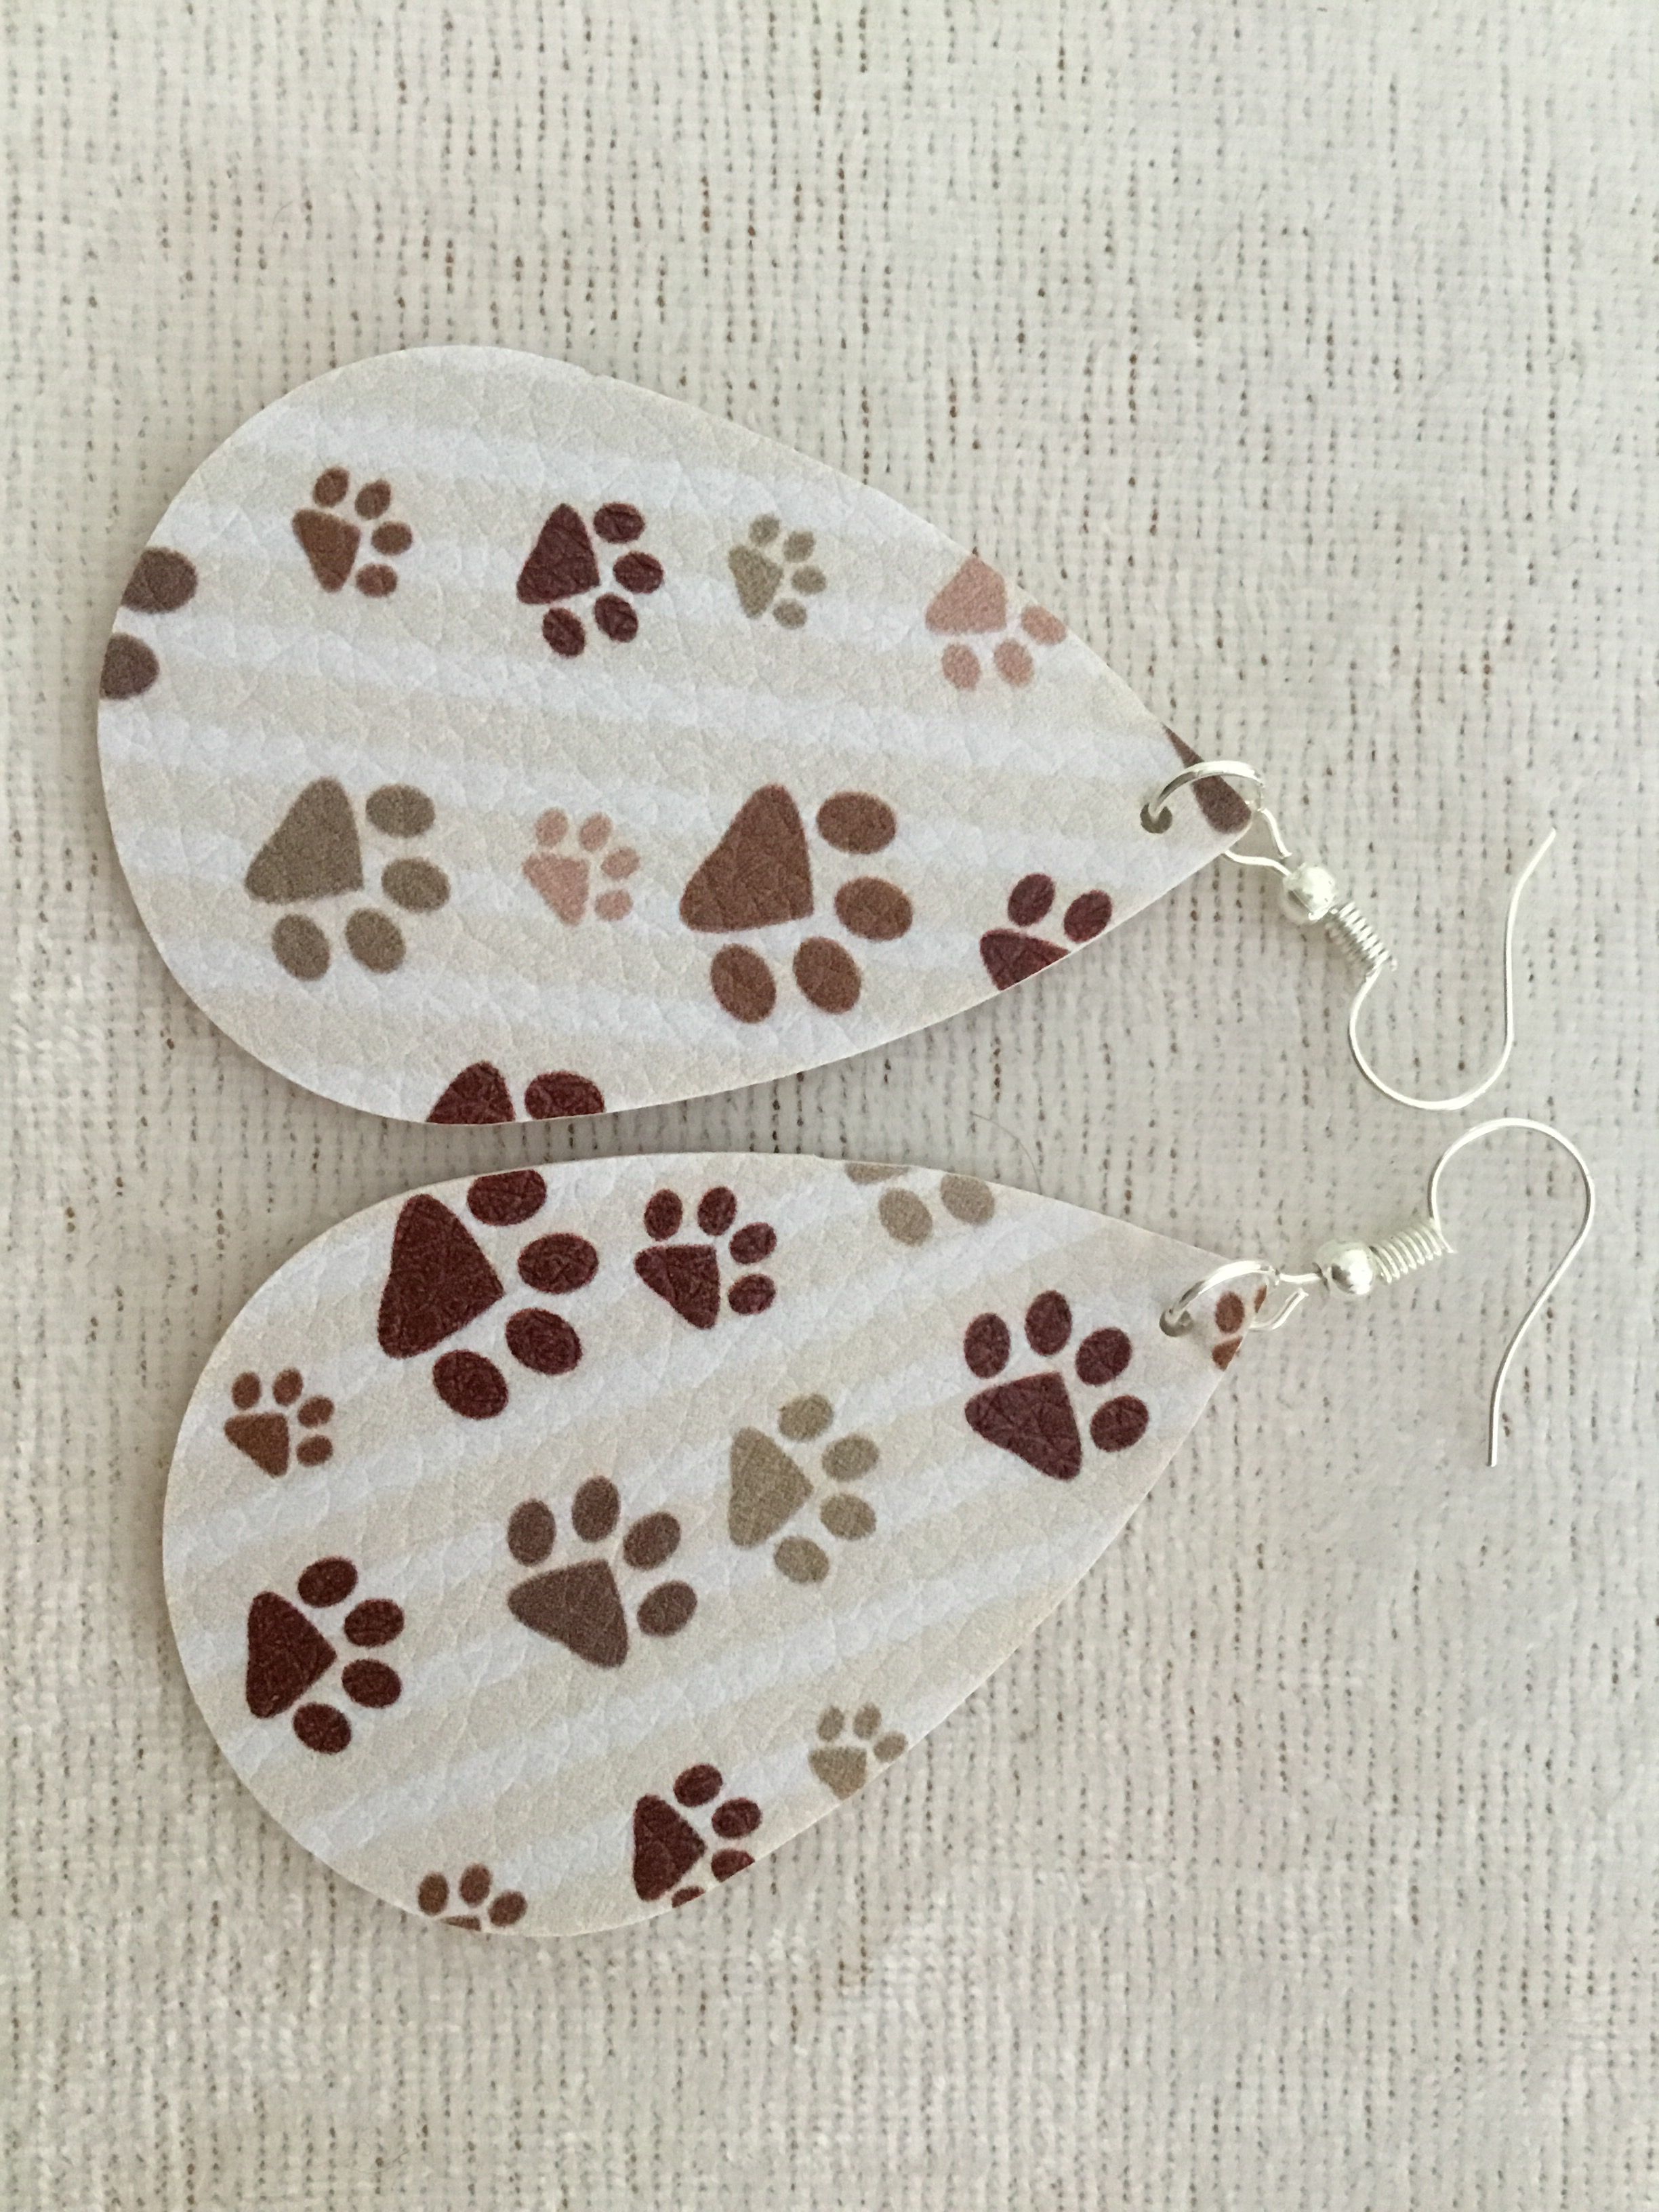 Paw Print Leather Earrings Stamped Paw Prints 3 Colors in